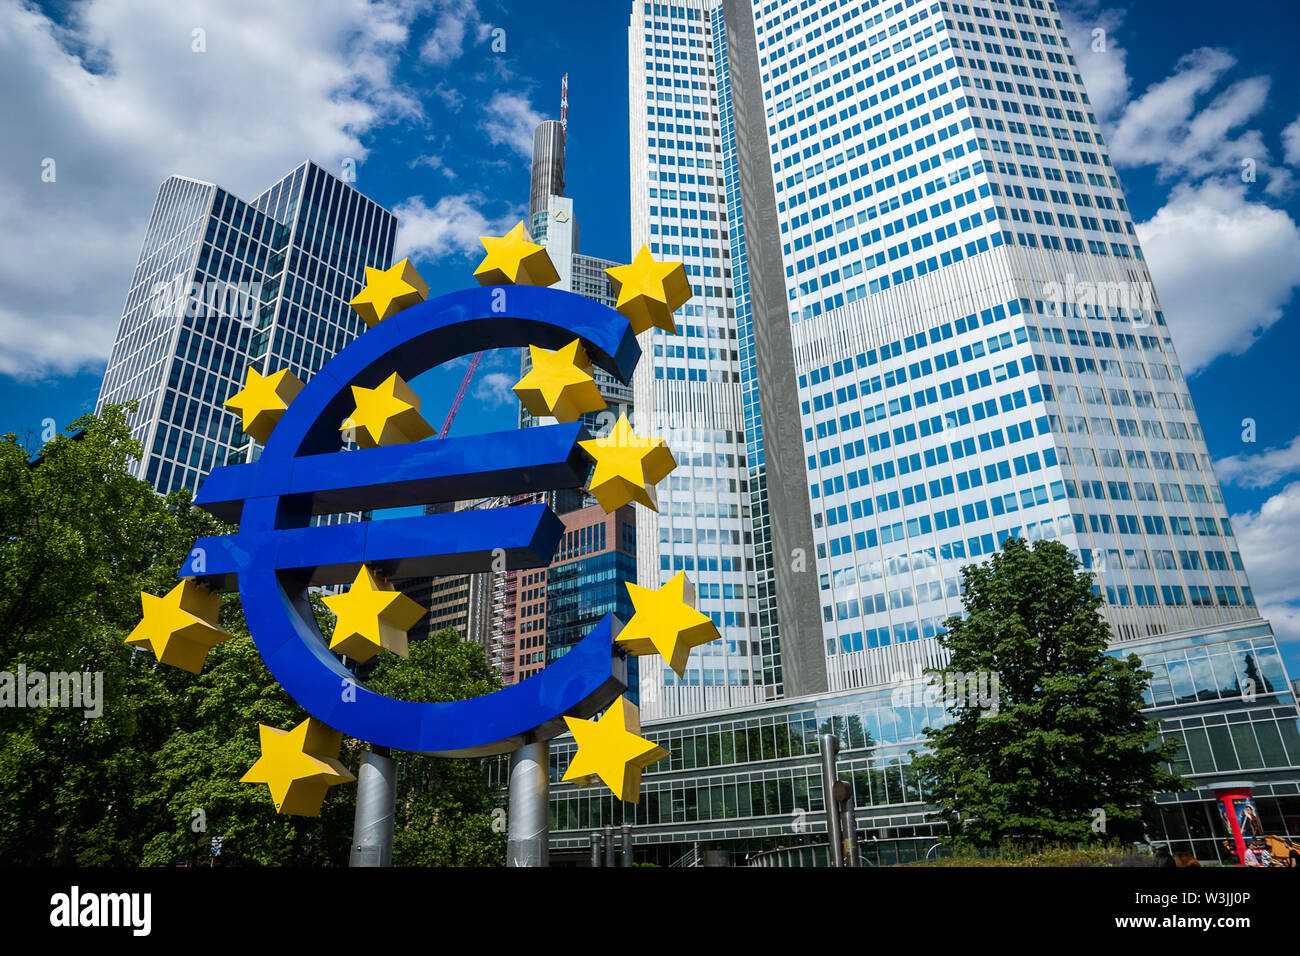 Frankfurt, Germany - July 2019: Euro Sign at European Central Bank (ECB), the central bank for the euro and administers the monetary policy of the EU Stock Photo